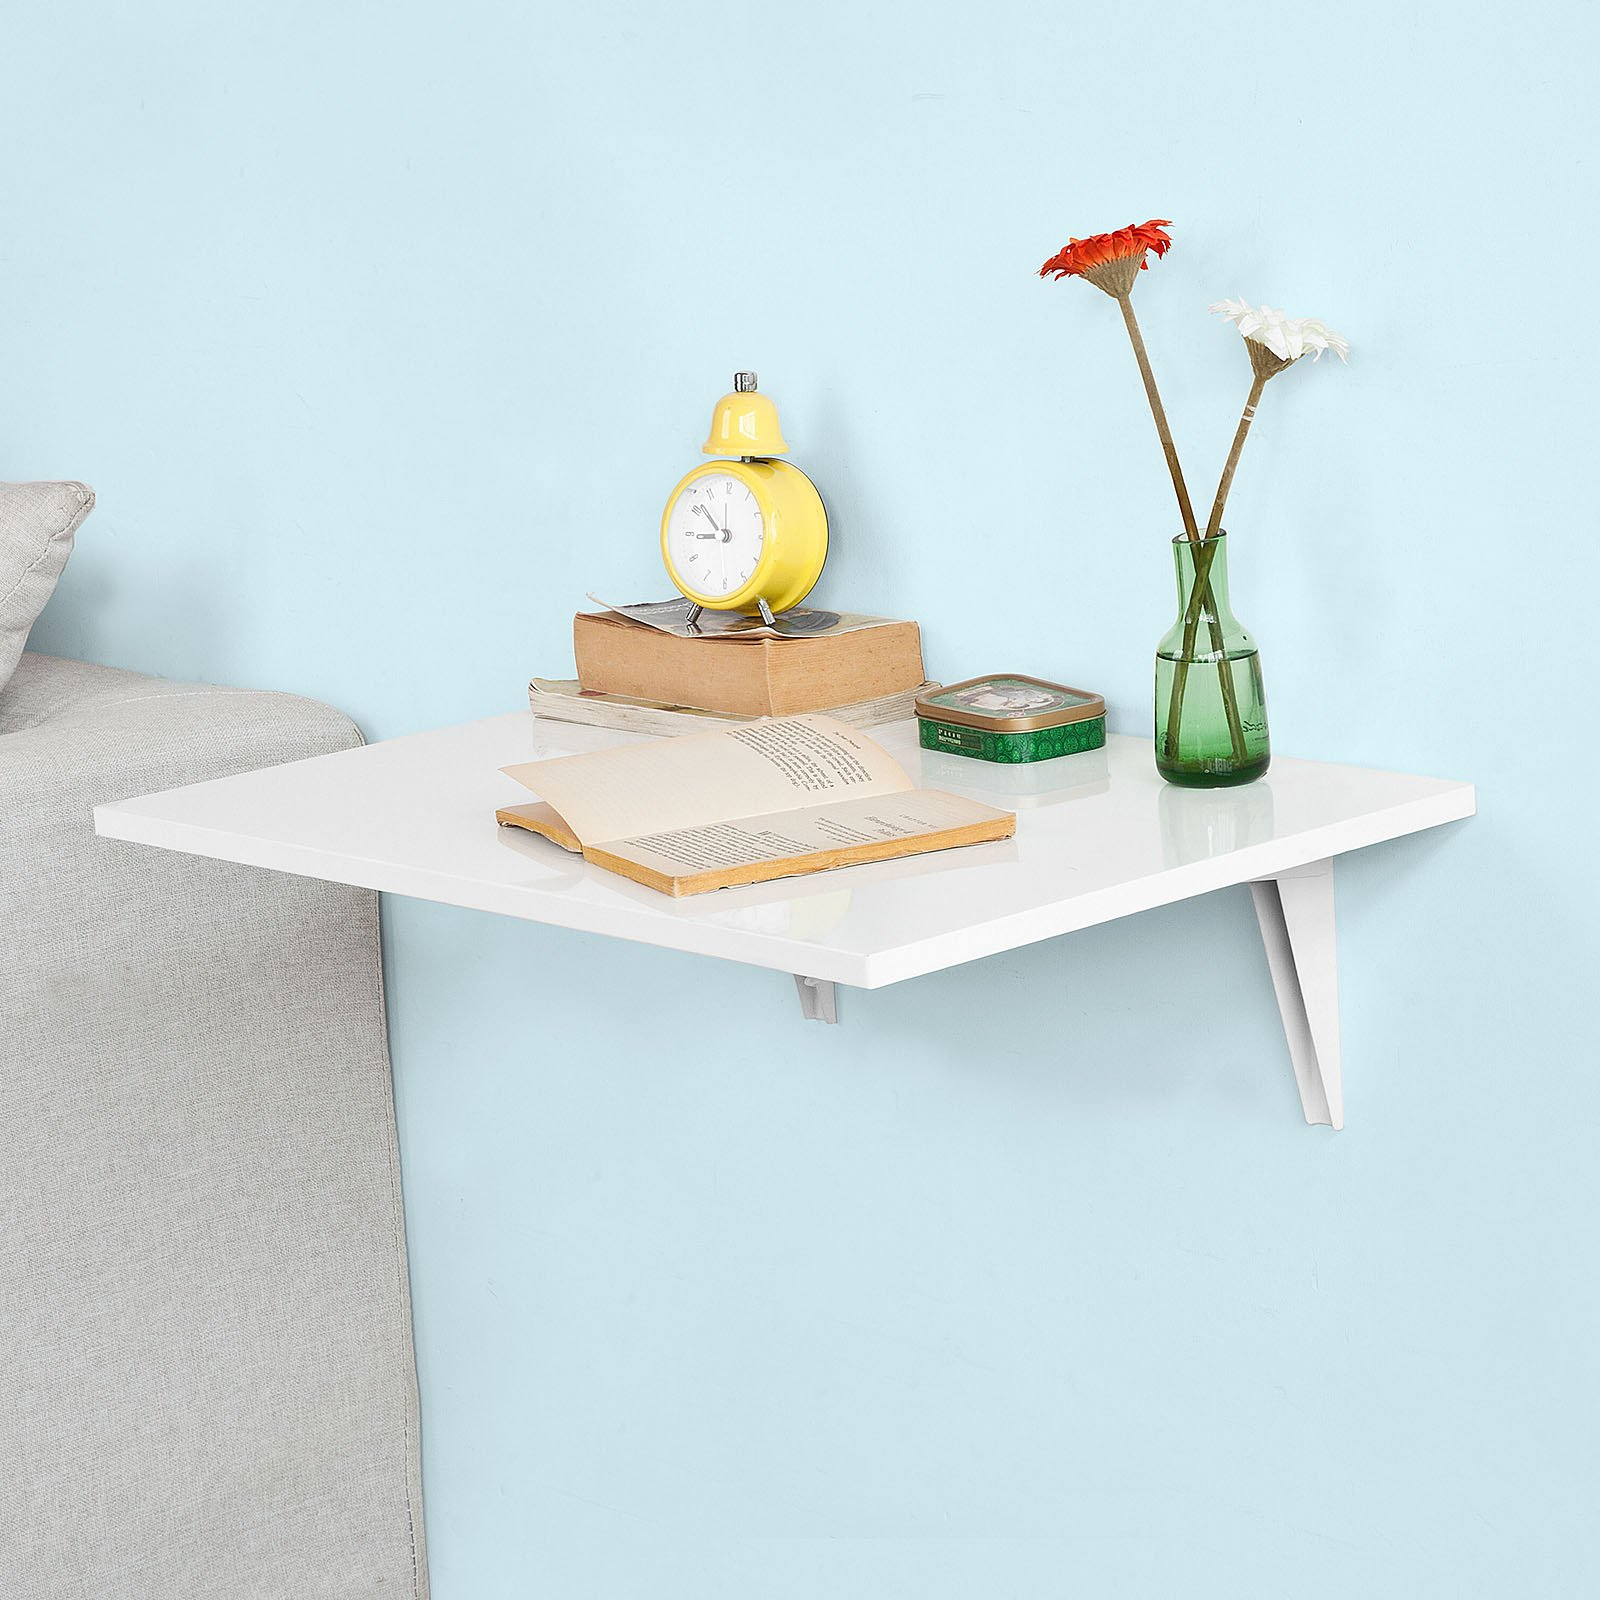 Haotian FWT21-W, Folding Wall-mounted Drop-leaf Table, Kitchen & Dining Table, Children Table Desk, 60x40cm, White